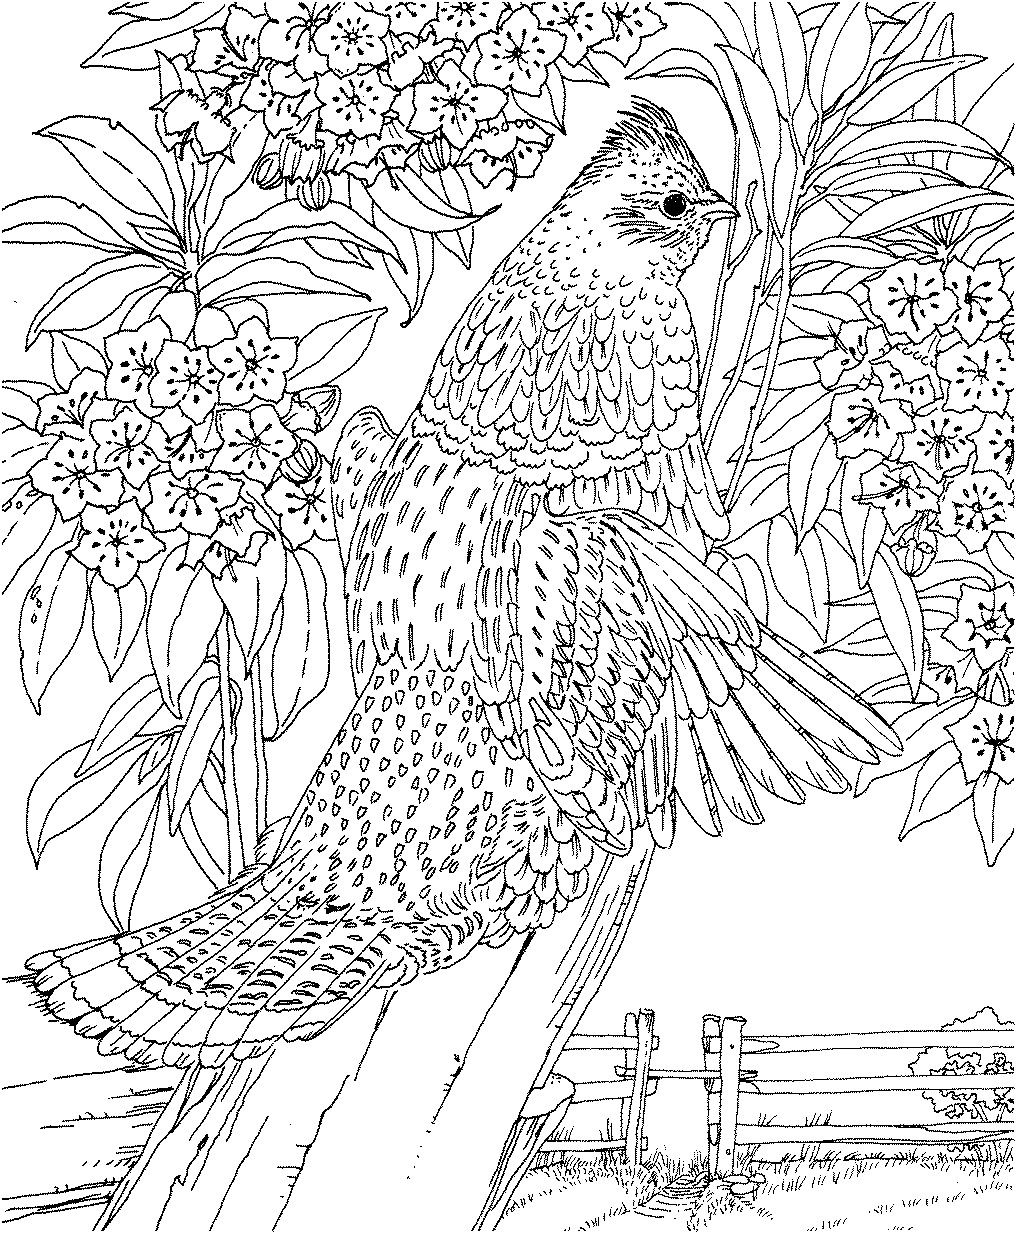 Uncategorized Landscape Coloring Pages For S dont forget to share difficult animals coloring pages for adults landscape printable attractive landsc